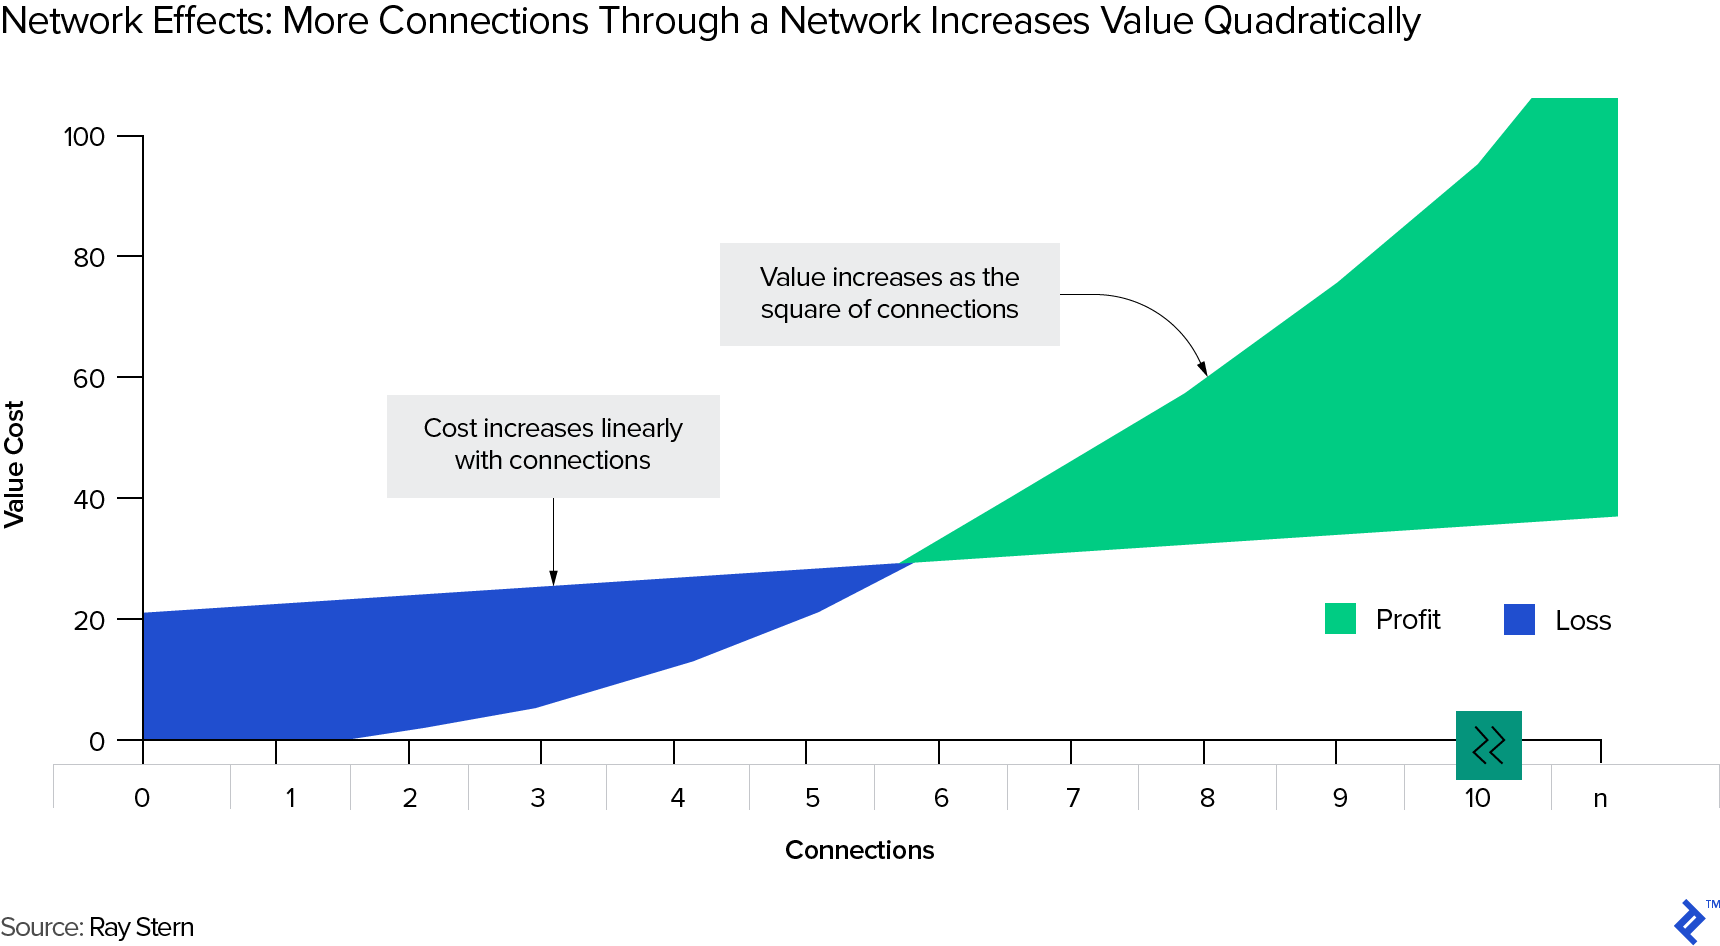 Graph of Network Effects: More Connections Through a Network Increases Value Quadratically